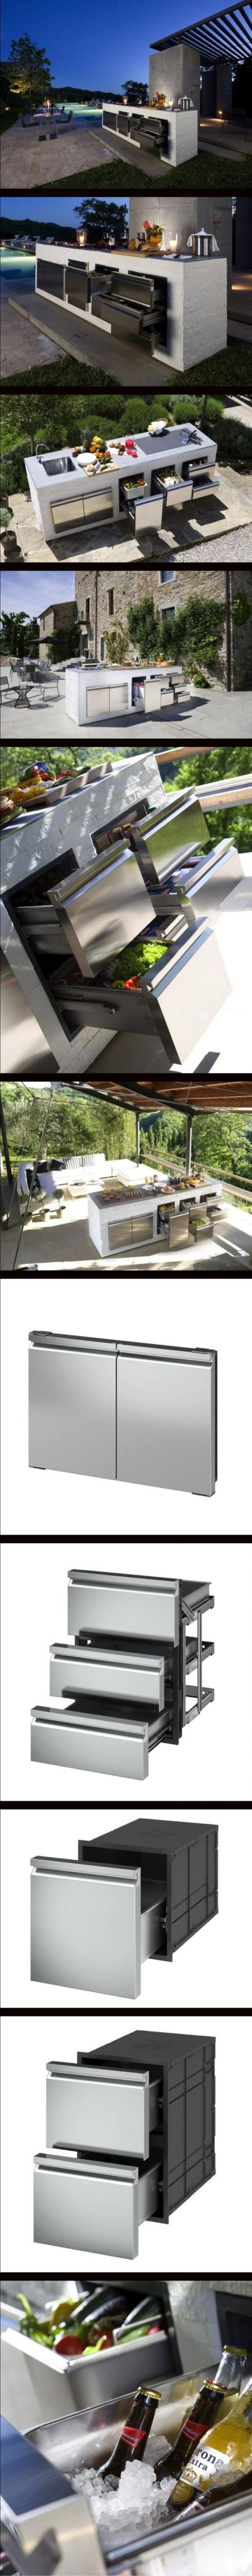 176 best Outdoor Kitchen and BBQ images on Pinterest | Outdoor ...